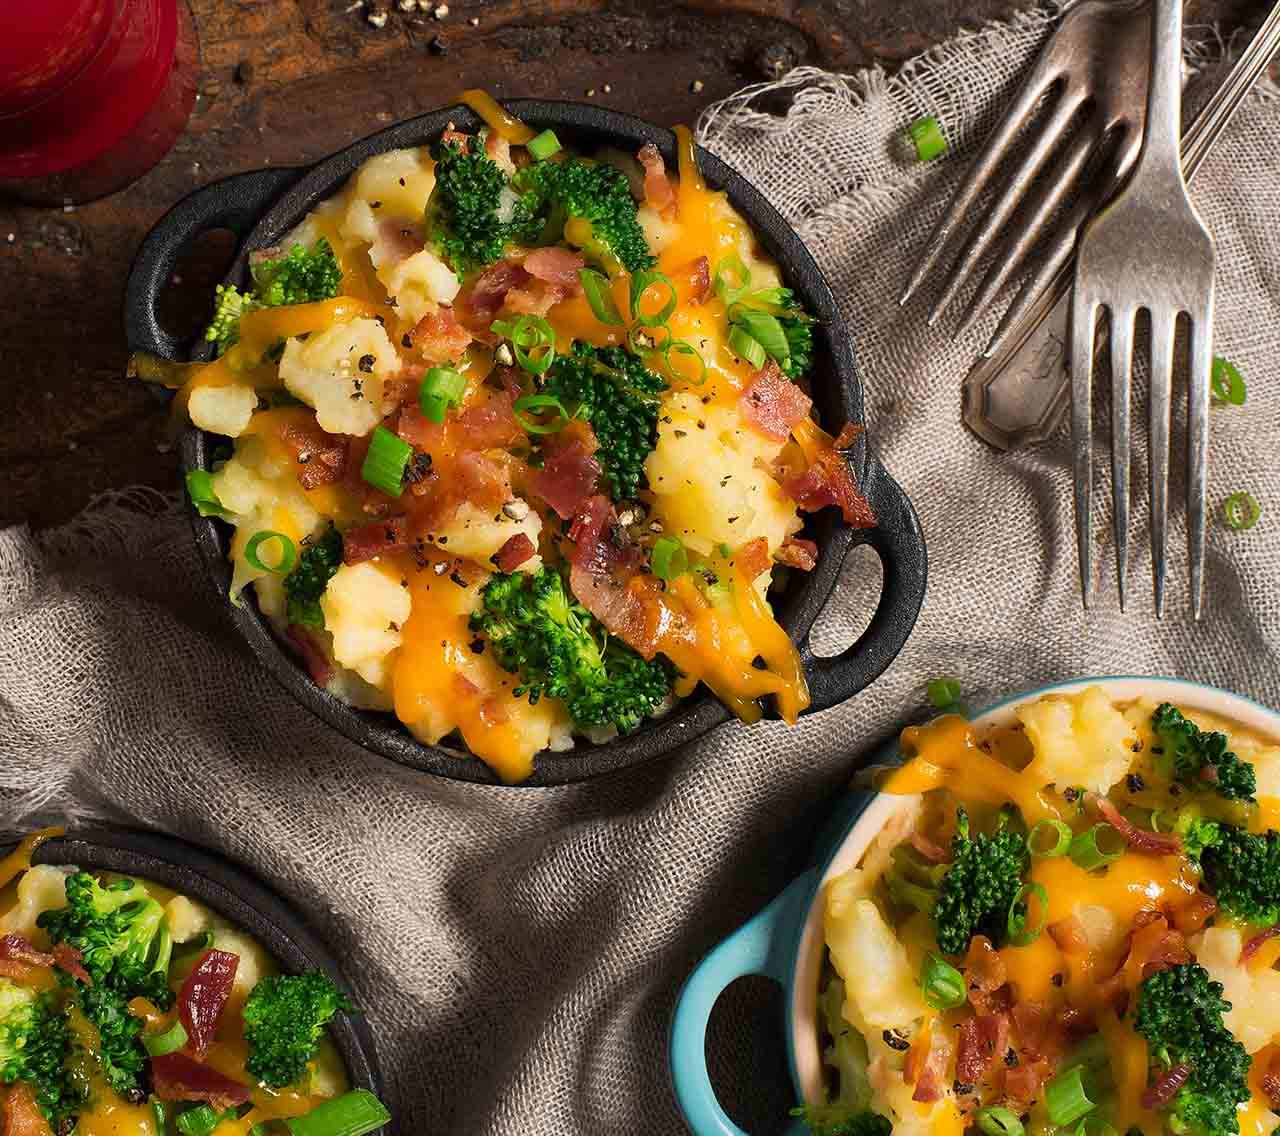 Loaded Mashed Potatoes with Bacon, Cheddar and Broccoli